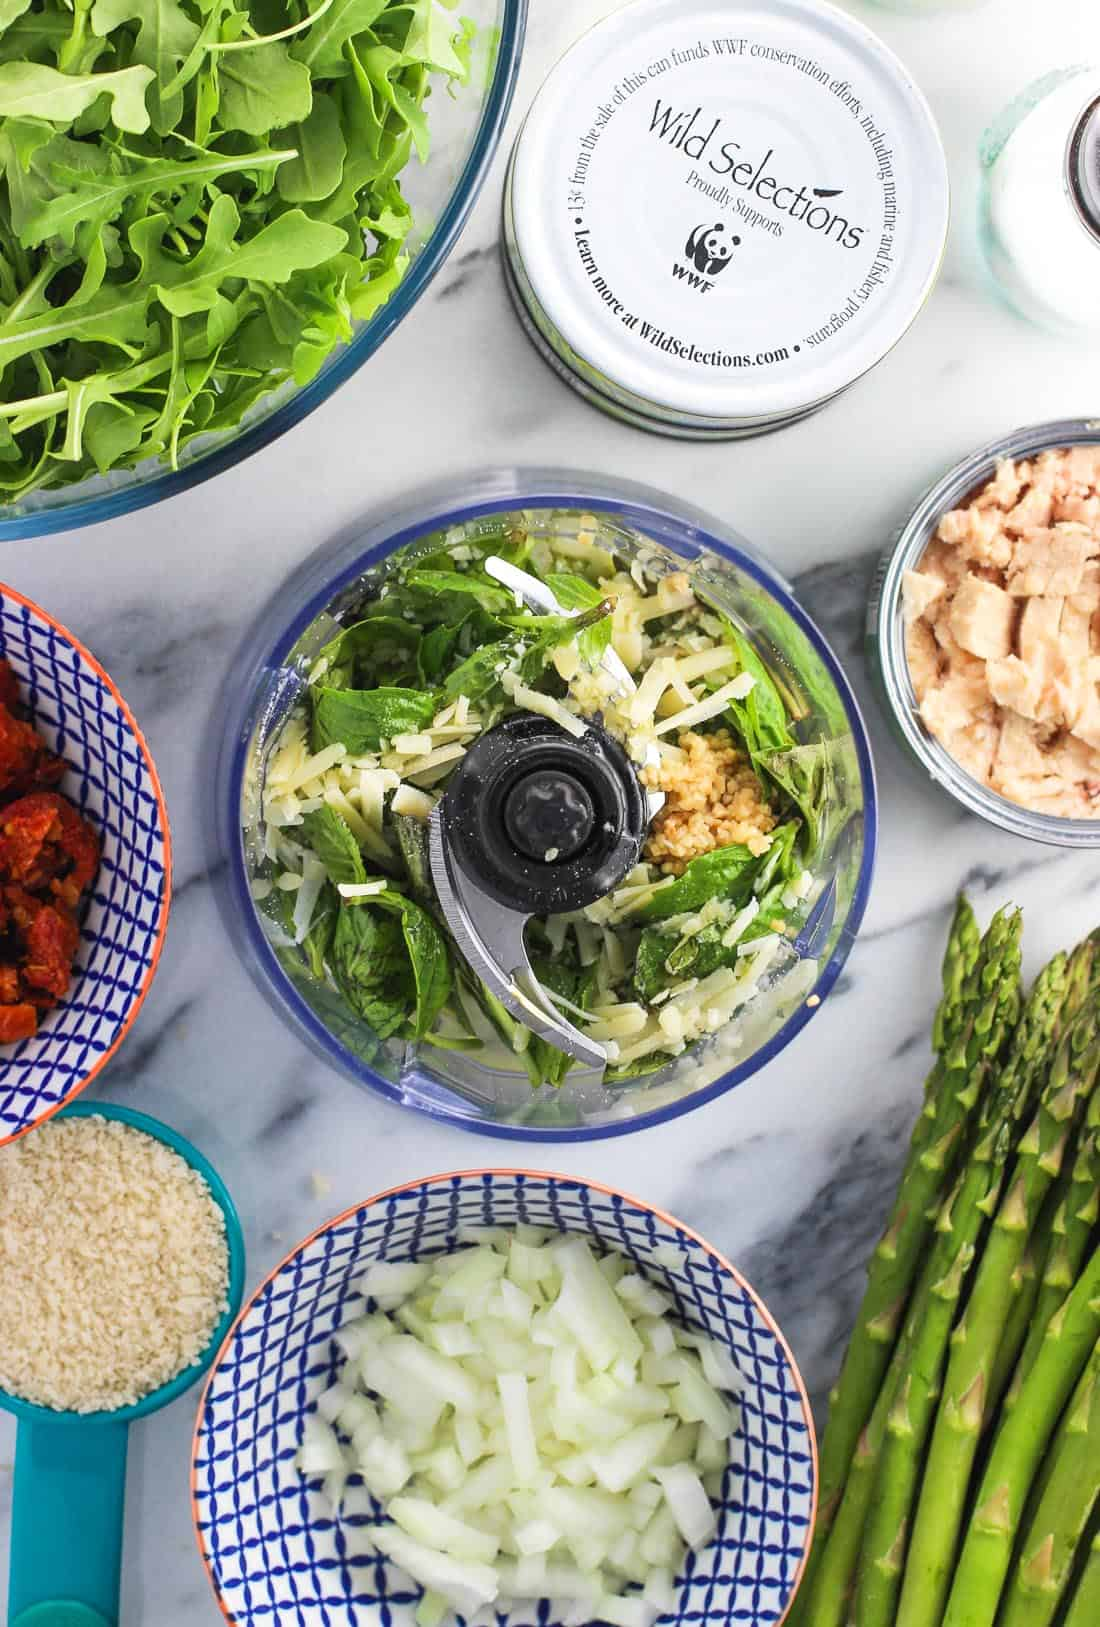 An overhead shot of ingredients in the food processor next to open cans of tuna, a bunch of asparagus, a bowl of arugula, etc.